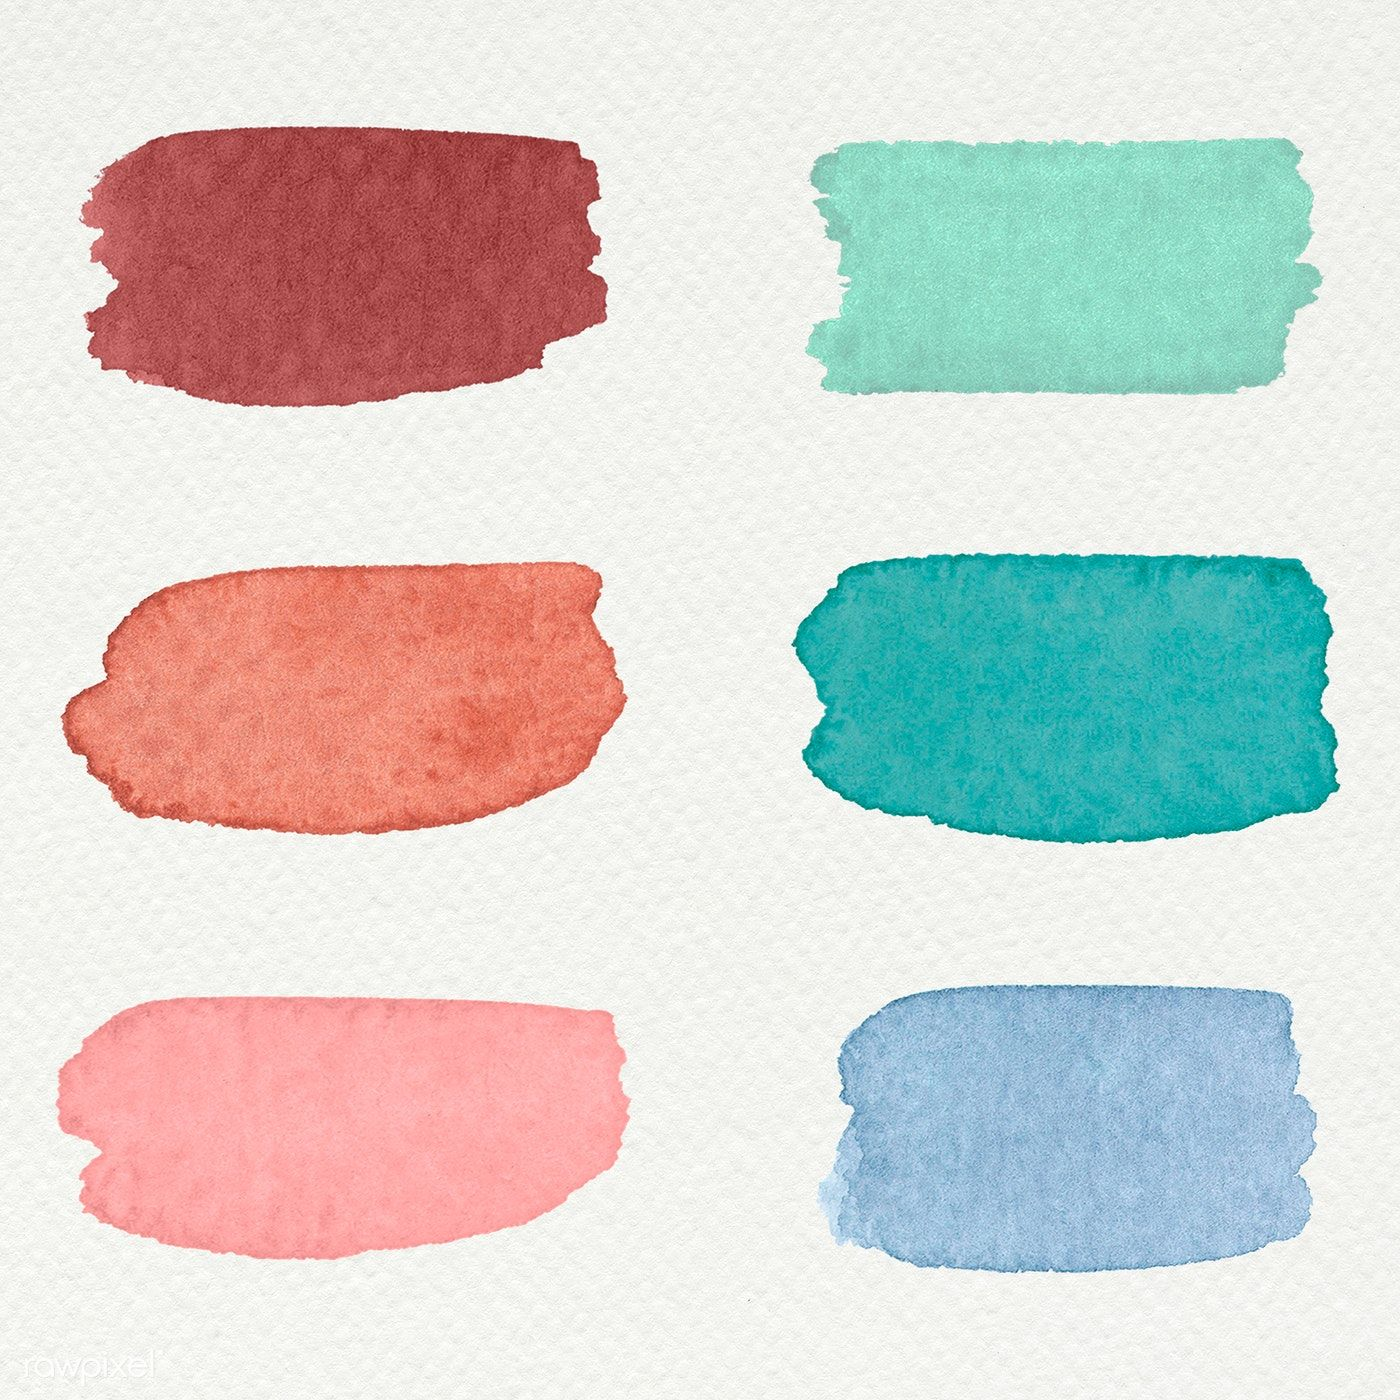 Colorful Watercolor Brush Strokes Illustration Free Image By